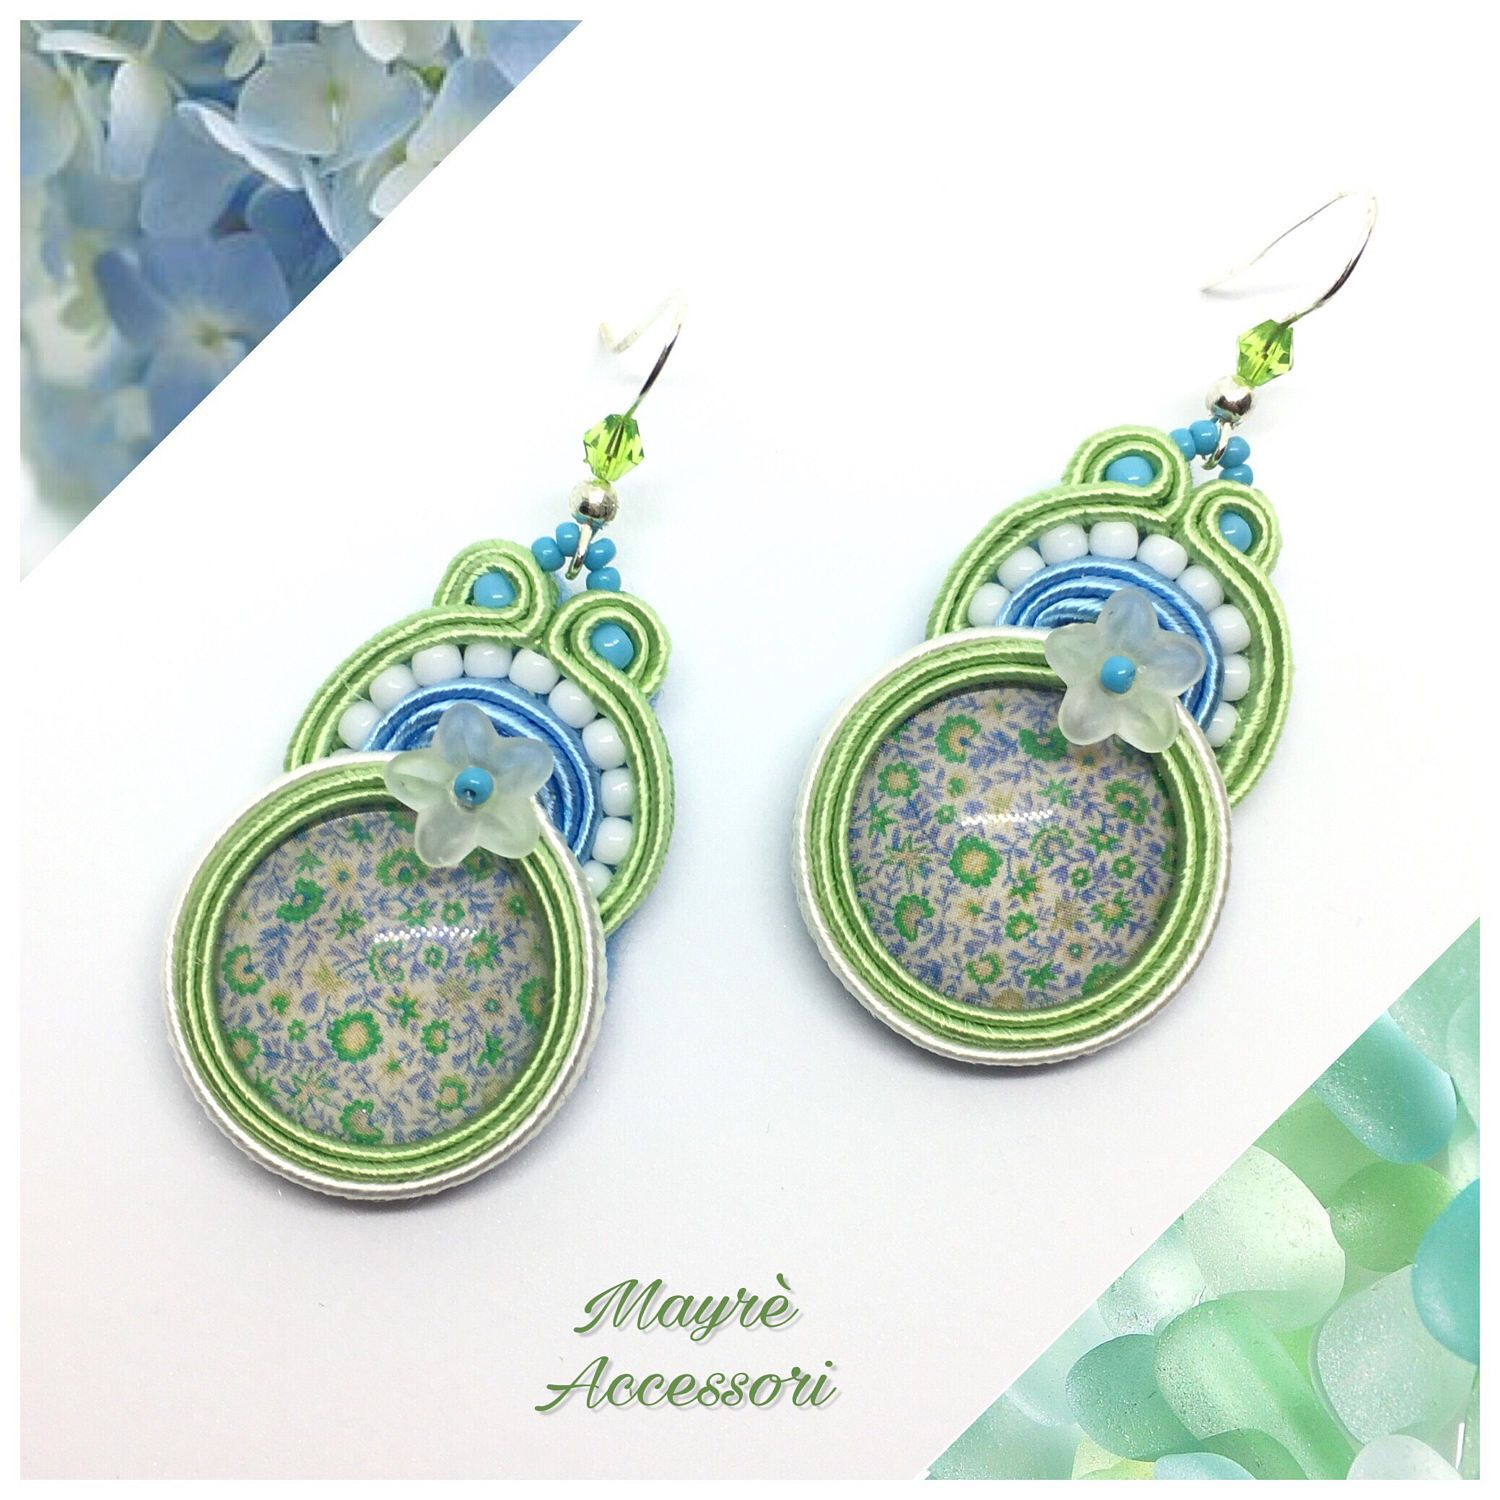 Un preferito personale dal mio negozio Etsy https://www.etsy.com/it/listing/523723703/soutache-earrings-orecchini-in-soutache